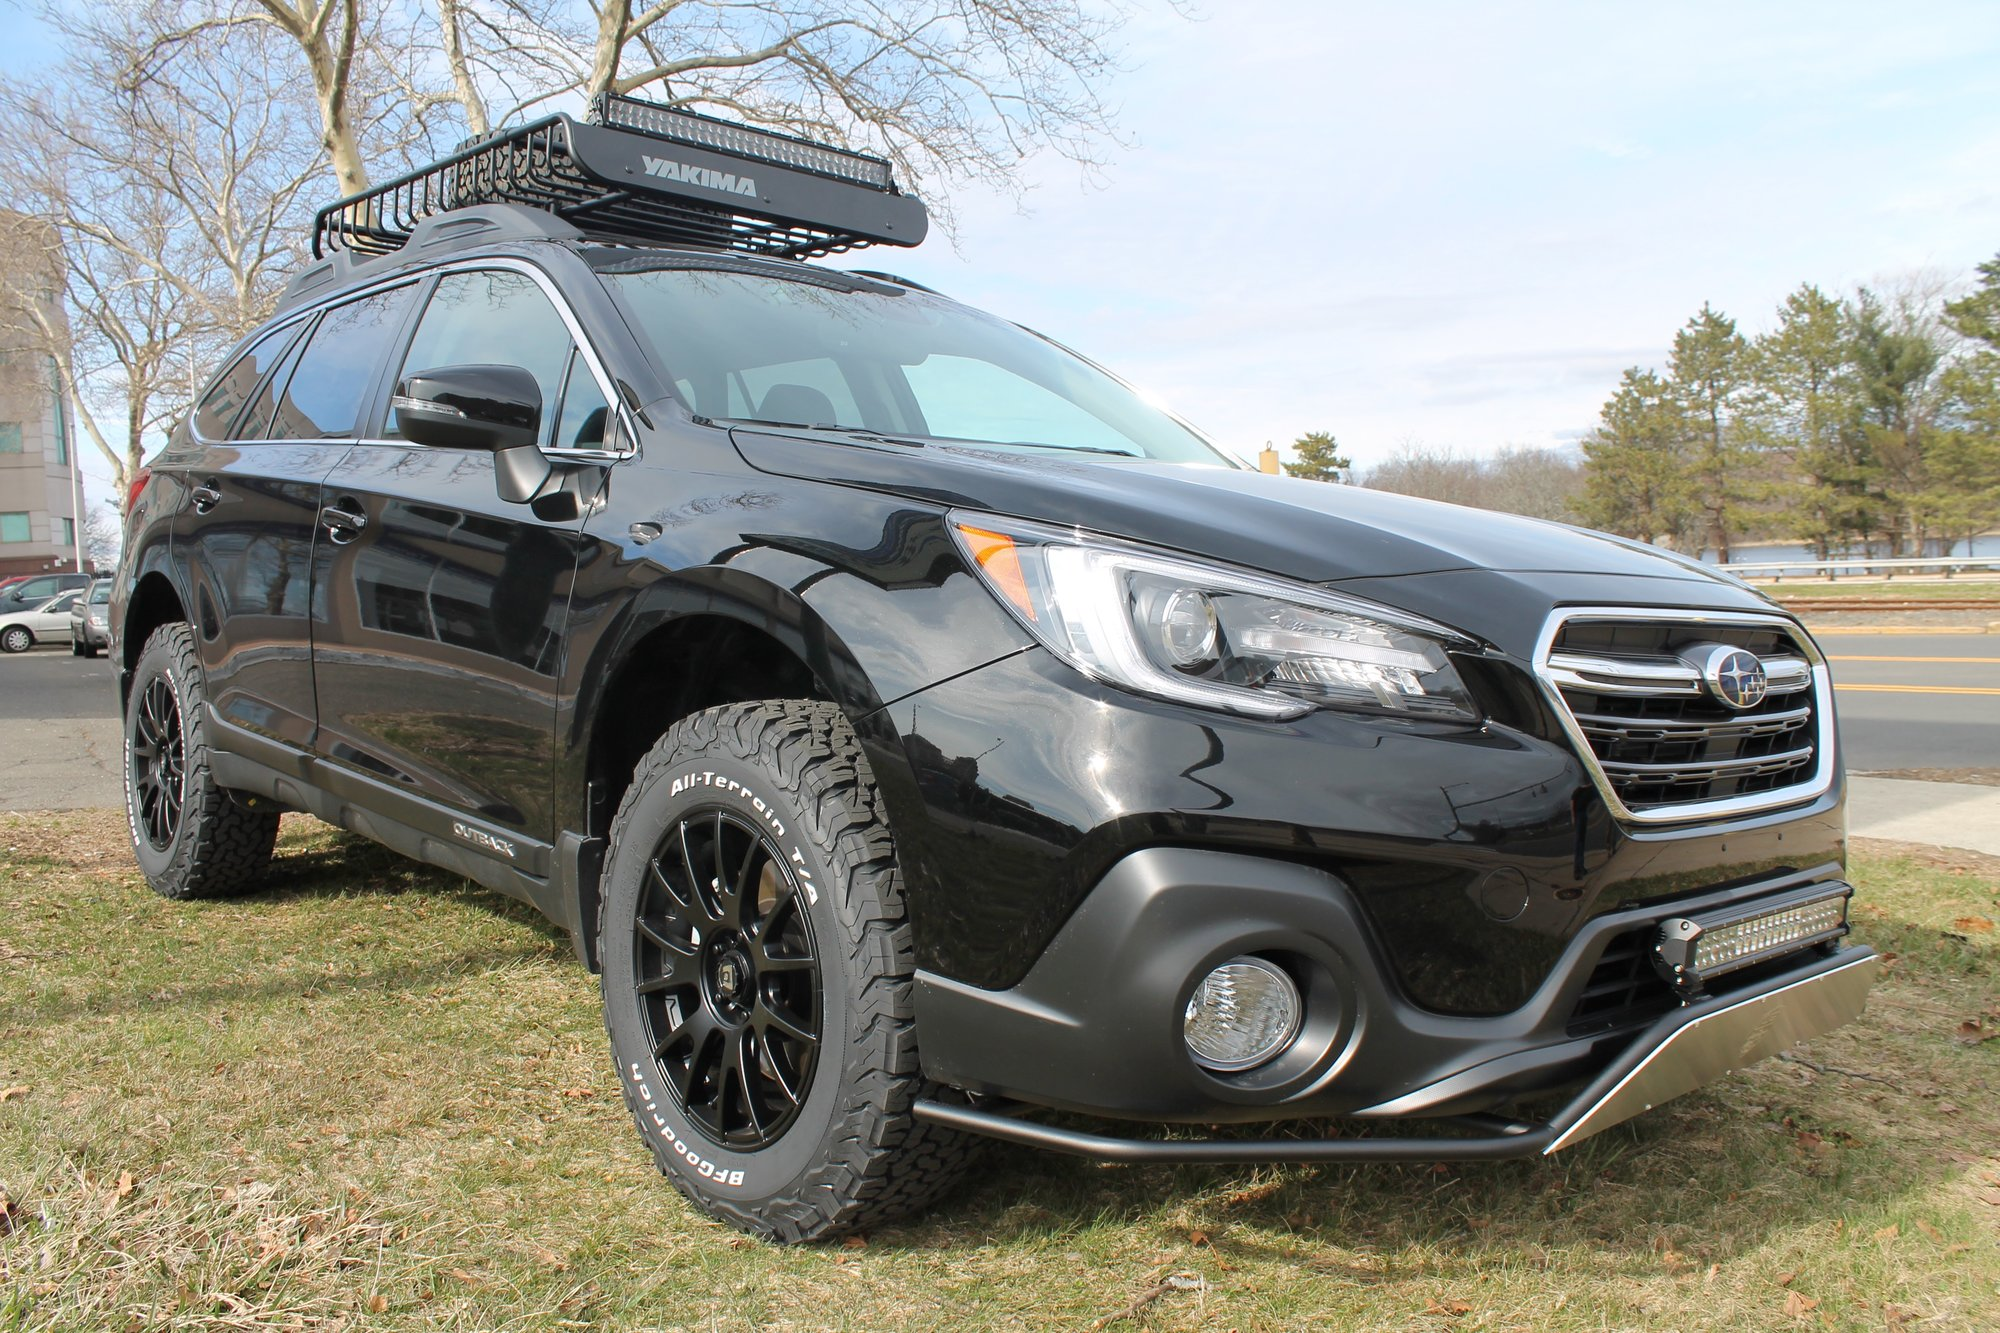 Outback Lift Kit Gallery CT - Subaru | Attention To Detail